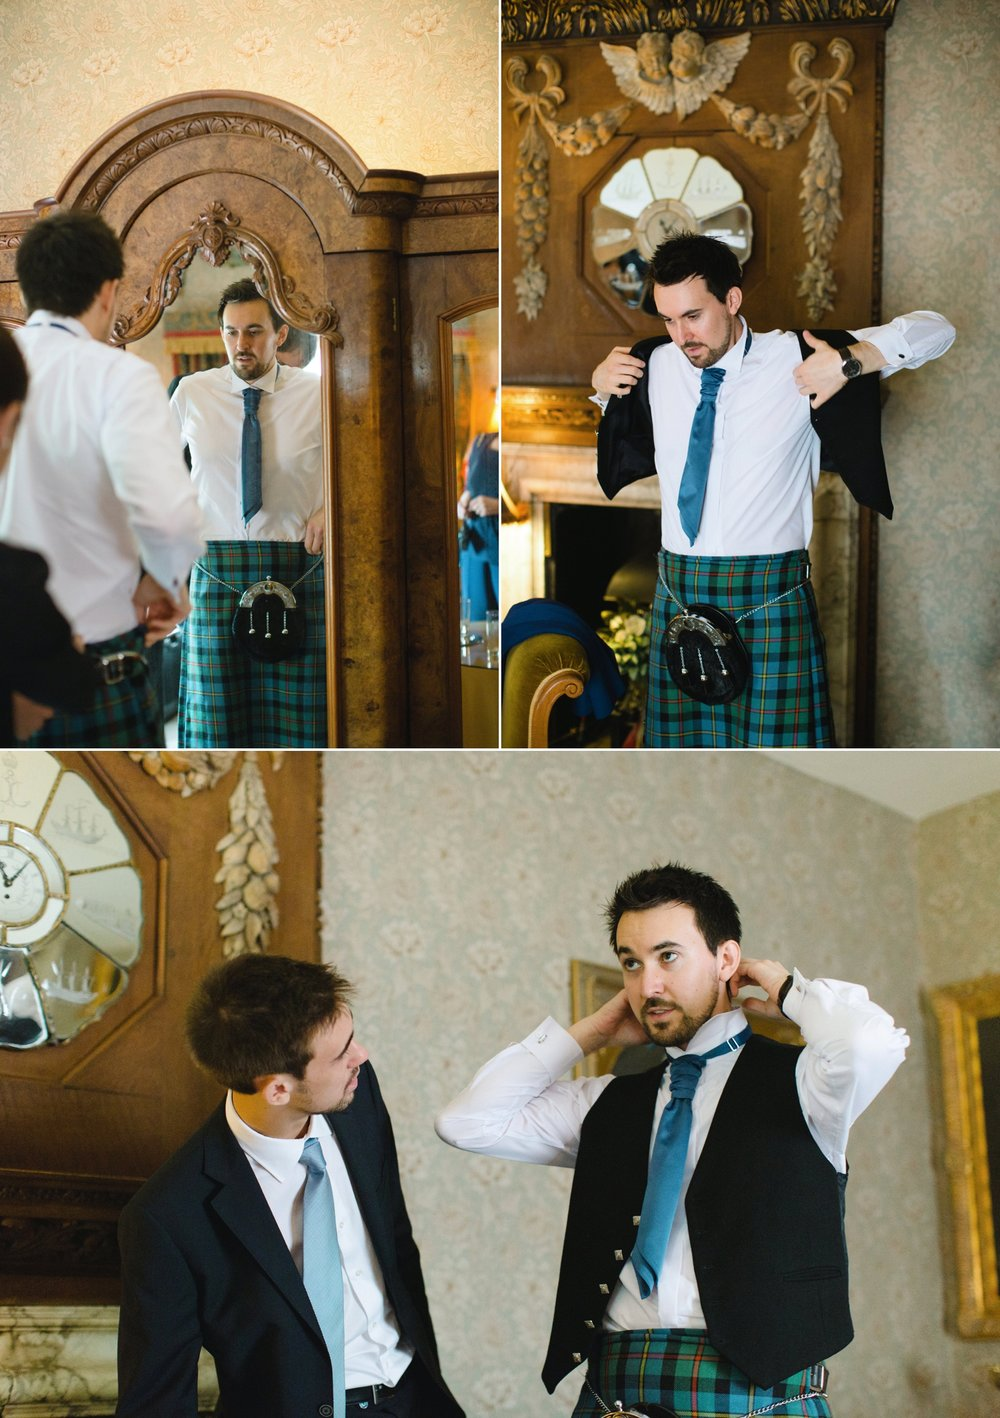 ScottishItalianRomanCampWedding1-80.jpg